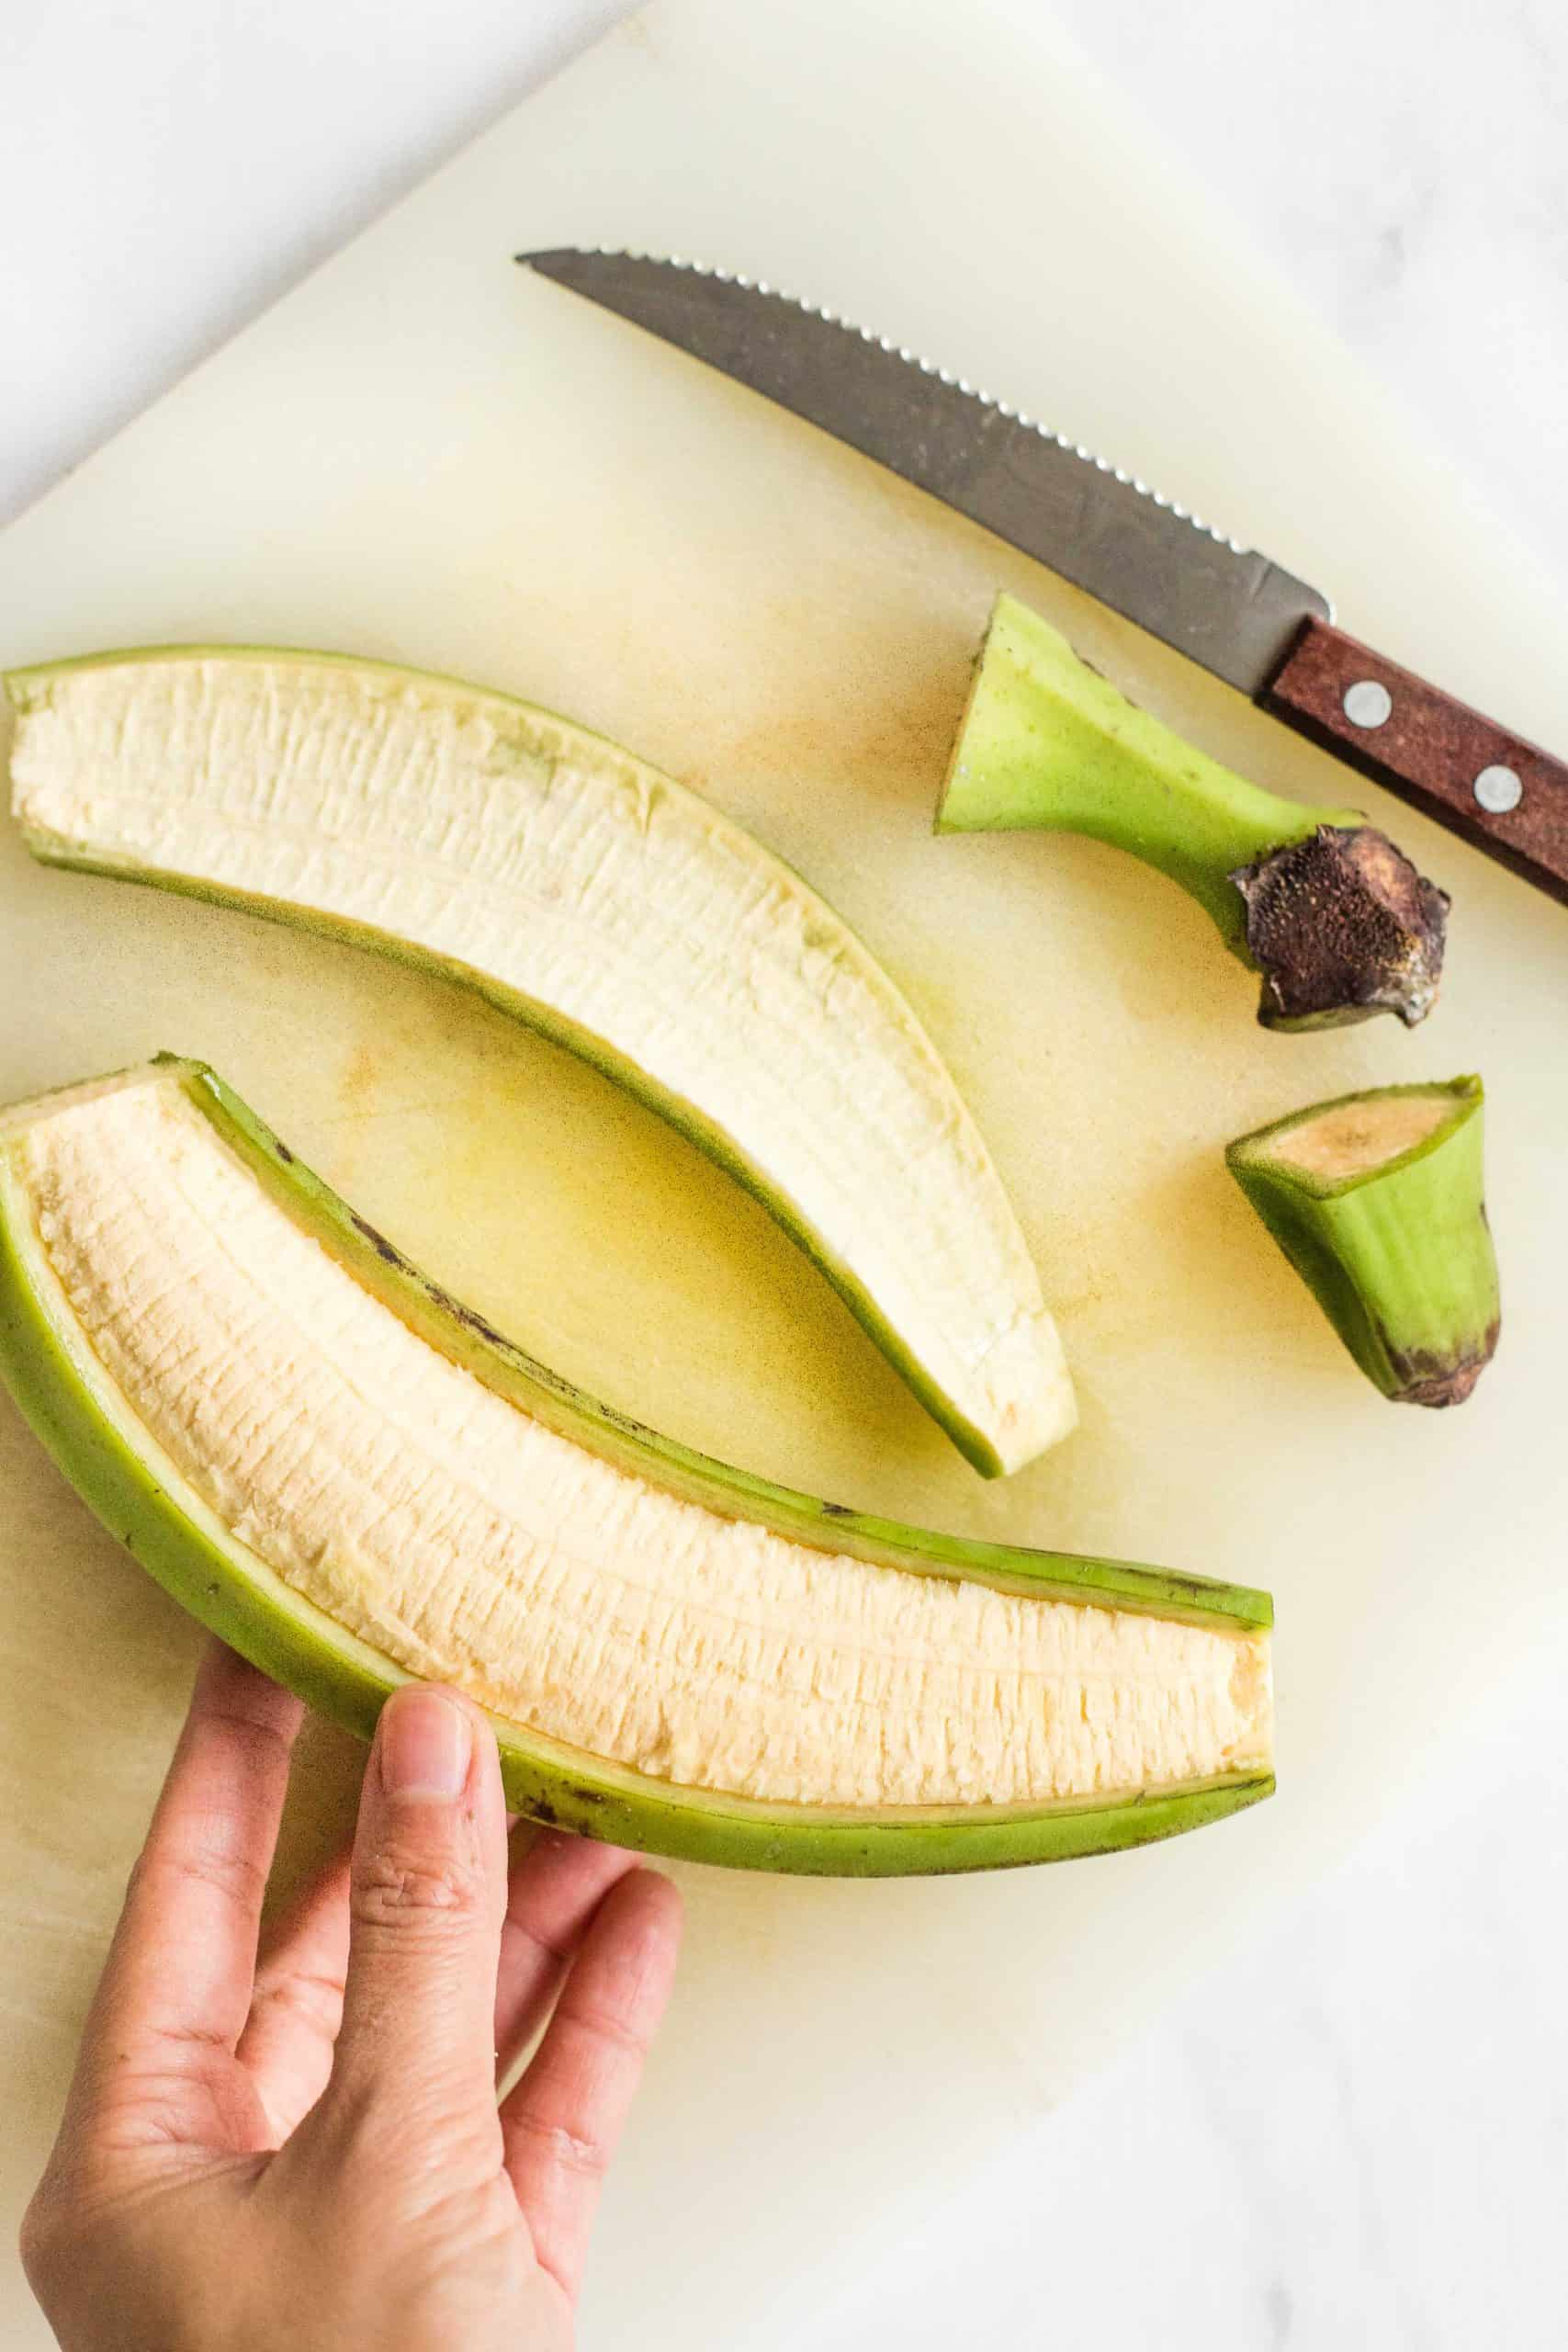 Holding a half-peeled green plantain.